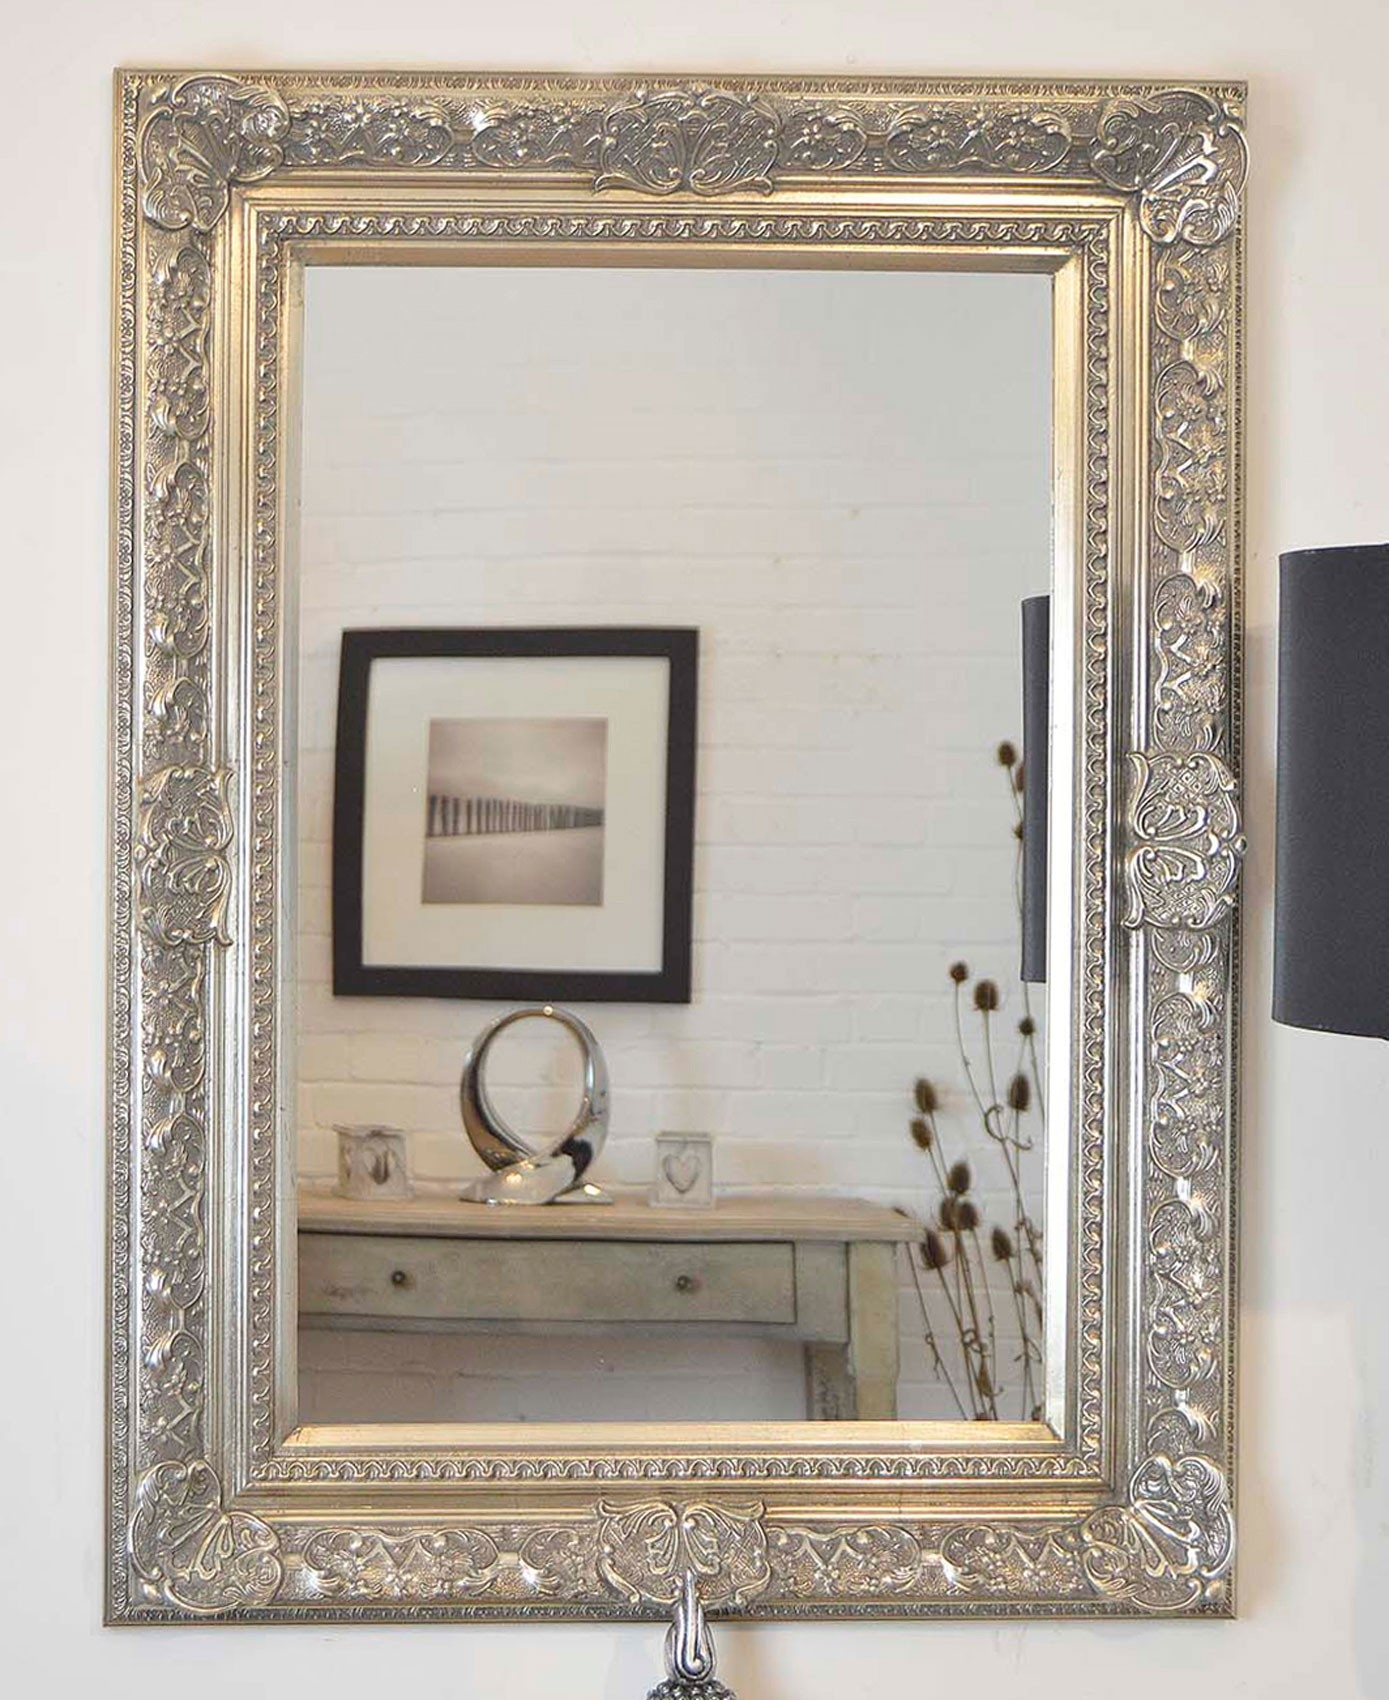 Large Silver Wall Mirror Wall Shelves Throughout Large Ornate Silver Mirror (View 15 of 15)